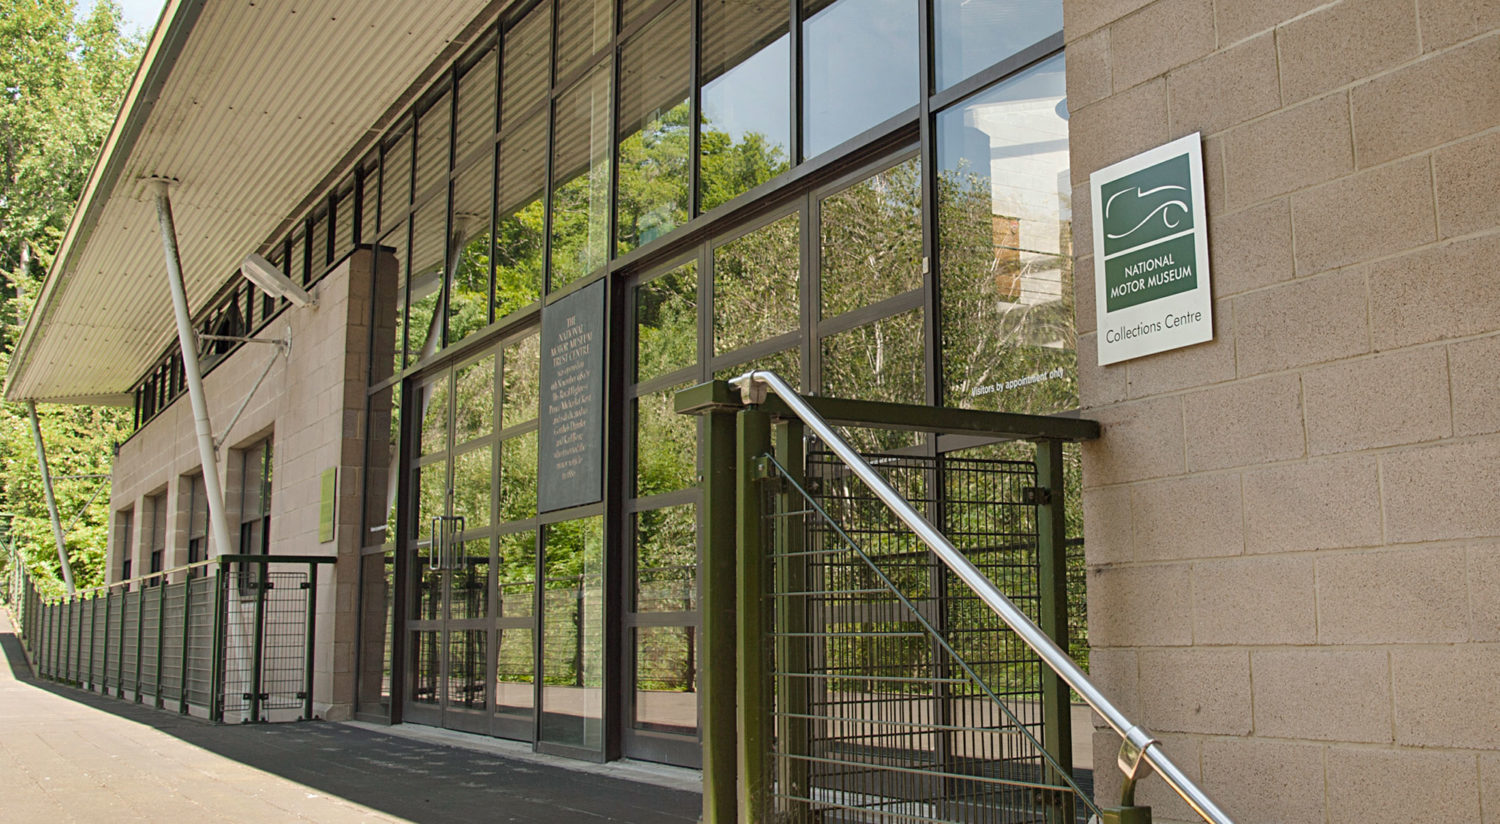 The entrance to the Collections Centre at the National Motor Museum